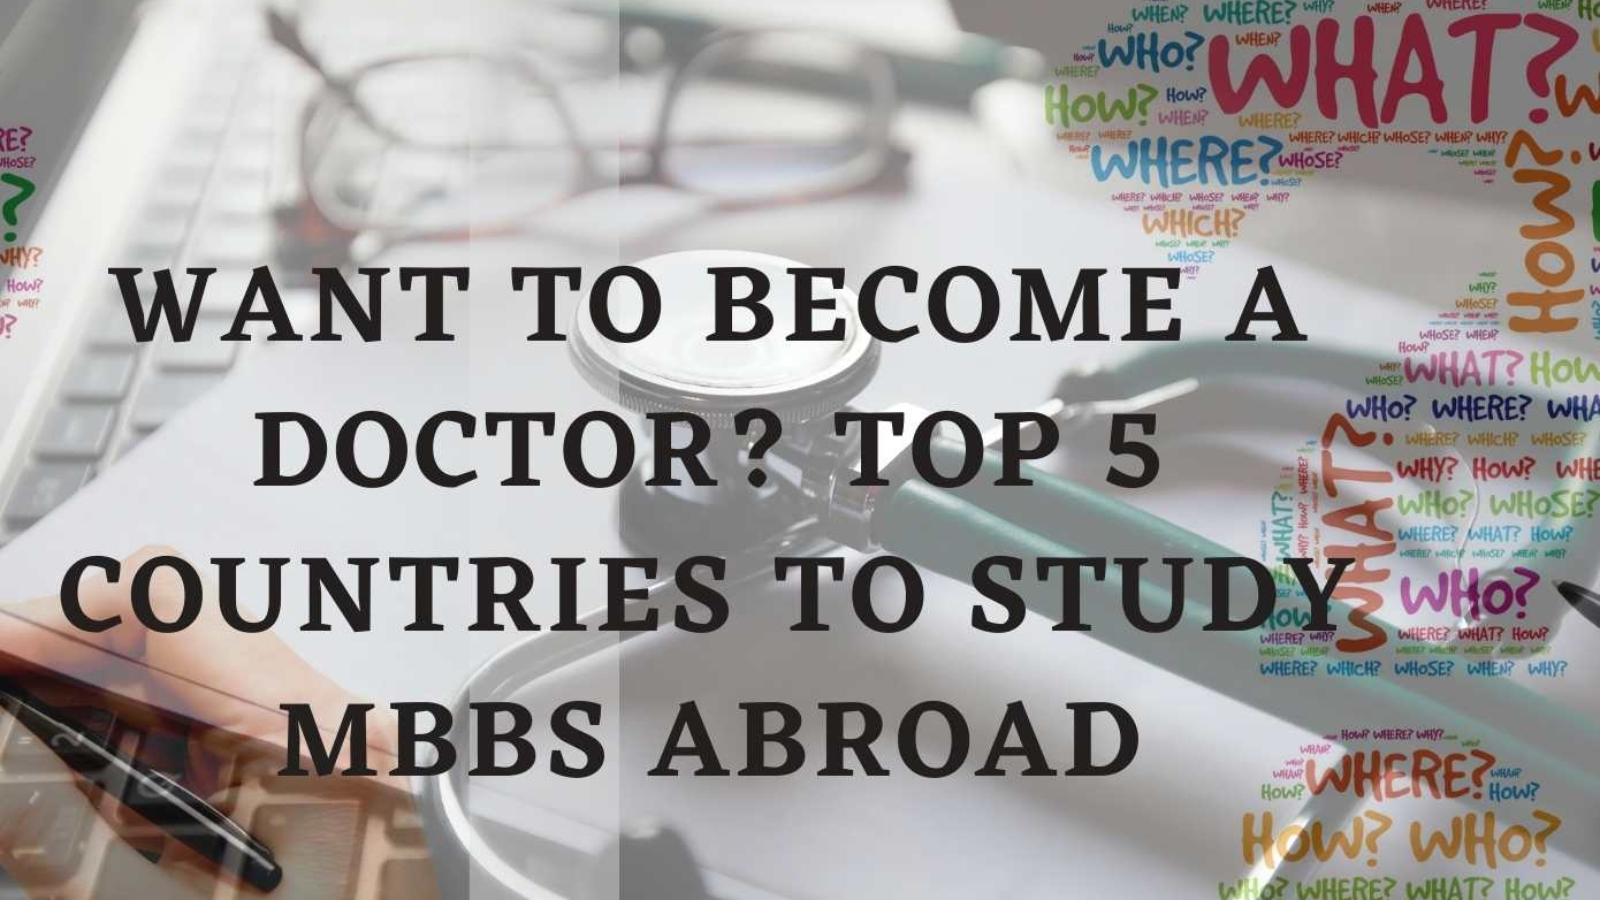 Want to become a Doctor? Top 5 countries to Study MBBS Abroad